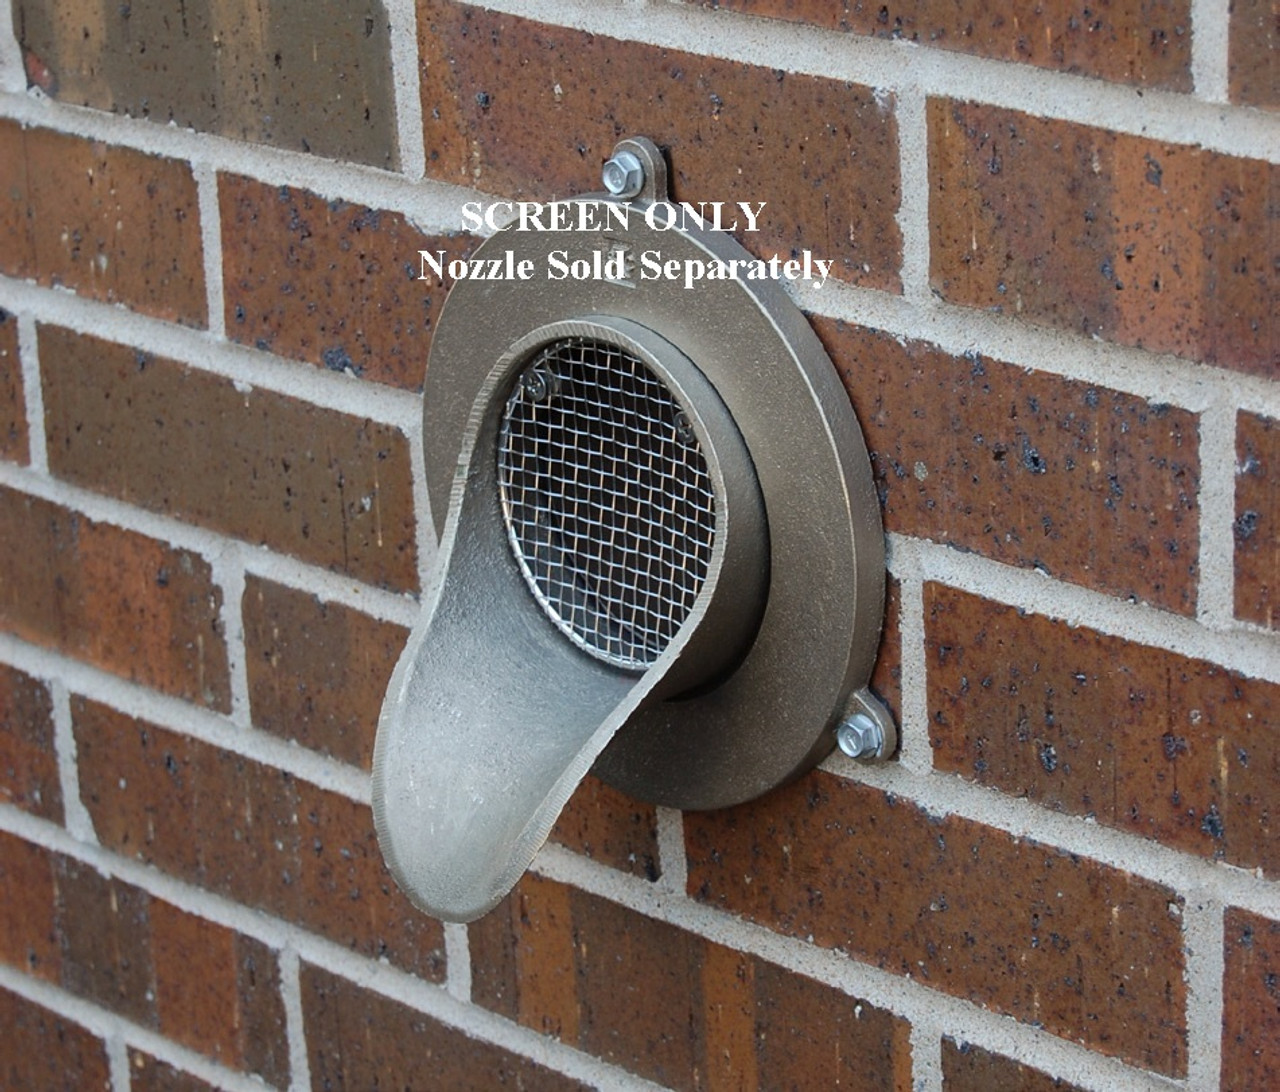 6 Quot Bird Screen For Nickel Bronze Downspout Nozzle The